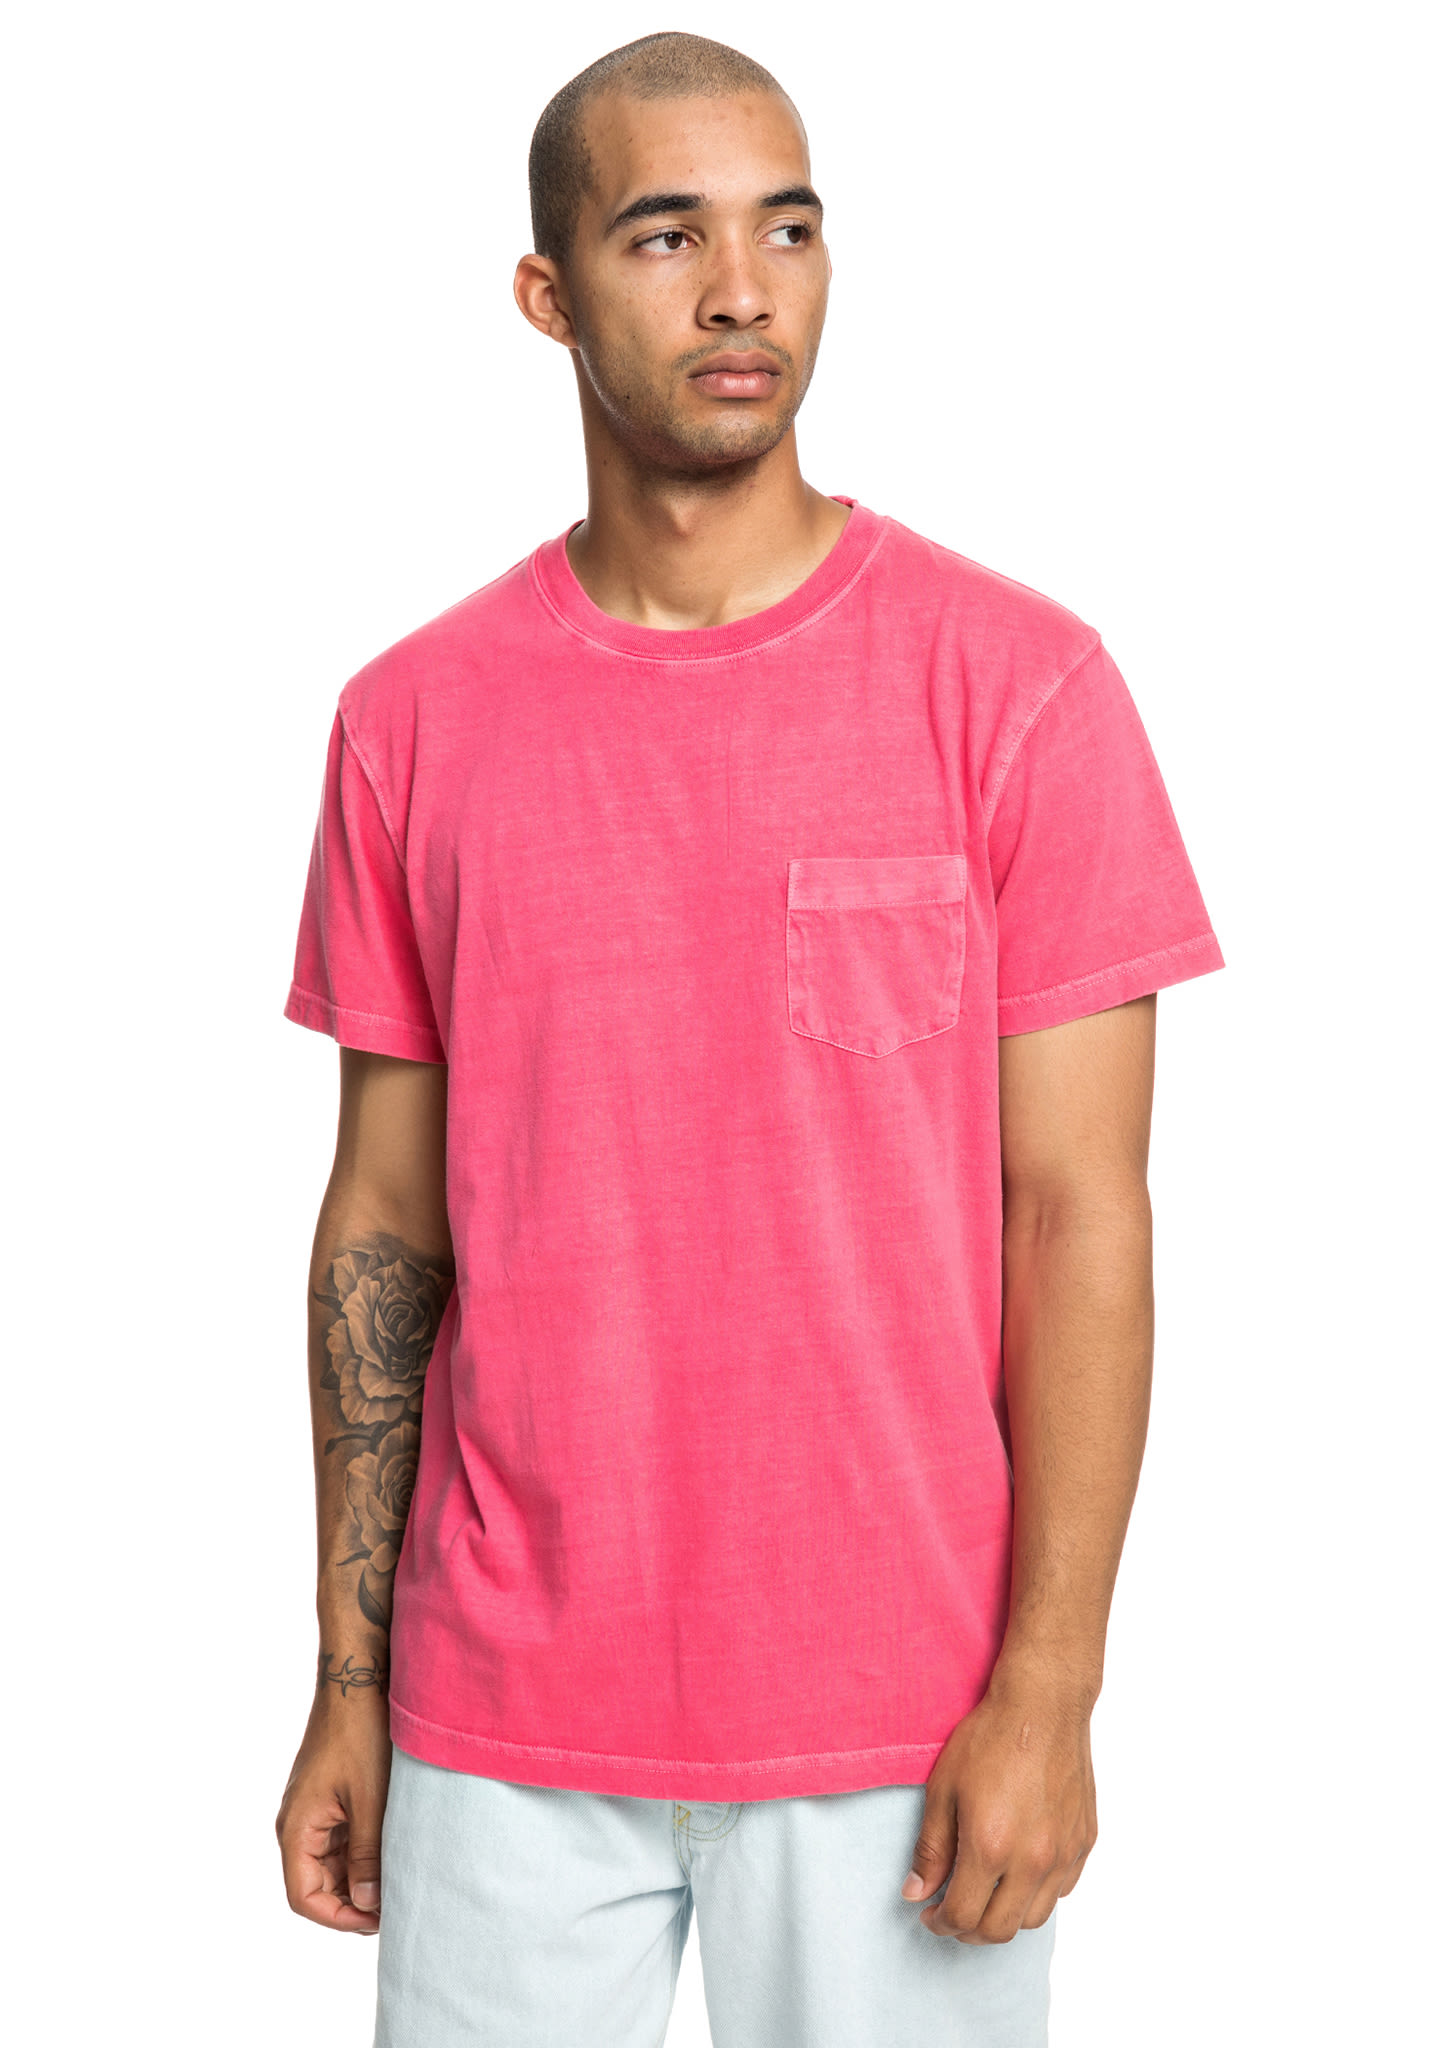 2e66c370 DC Dyed Pocket Crew - T-Shirt for Men - Pink - Planet Sports